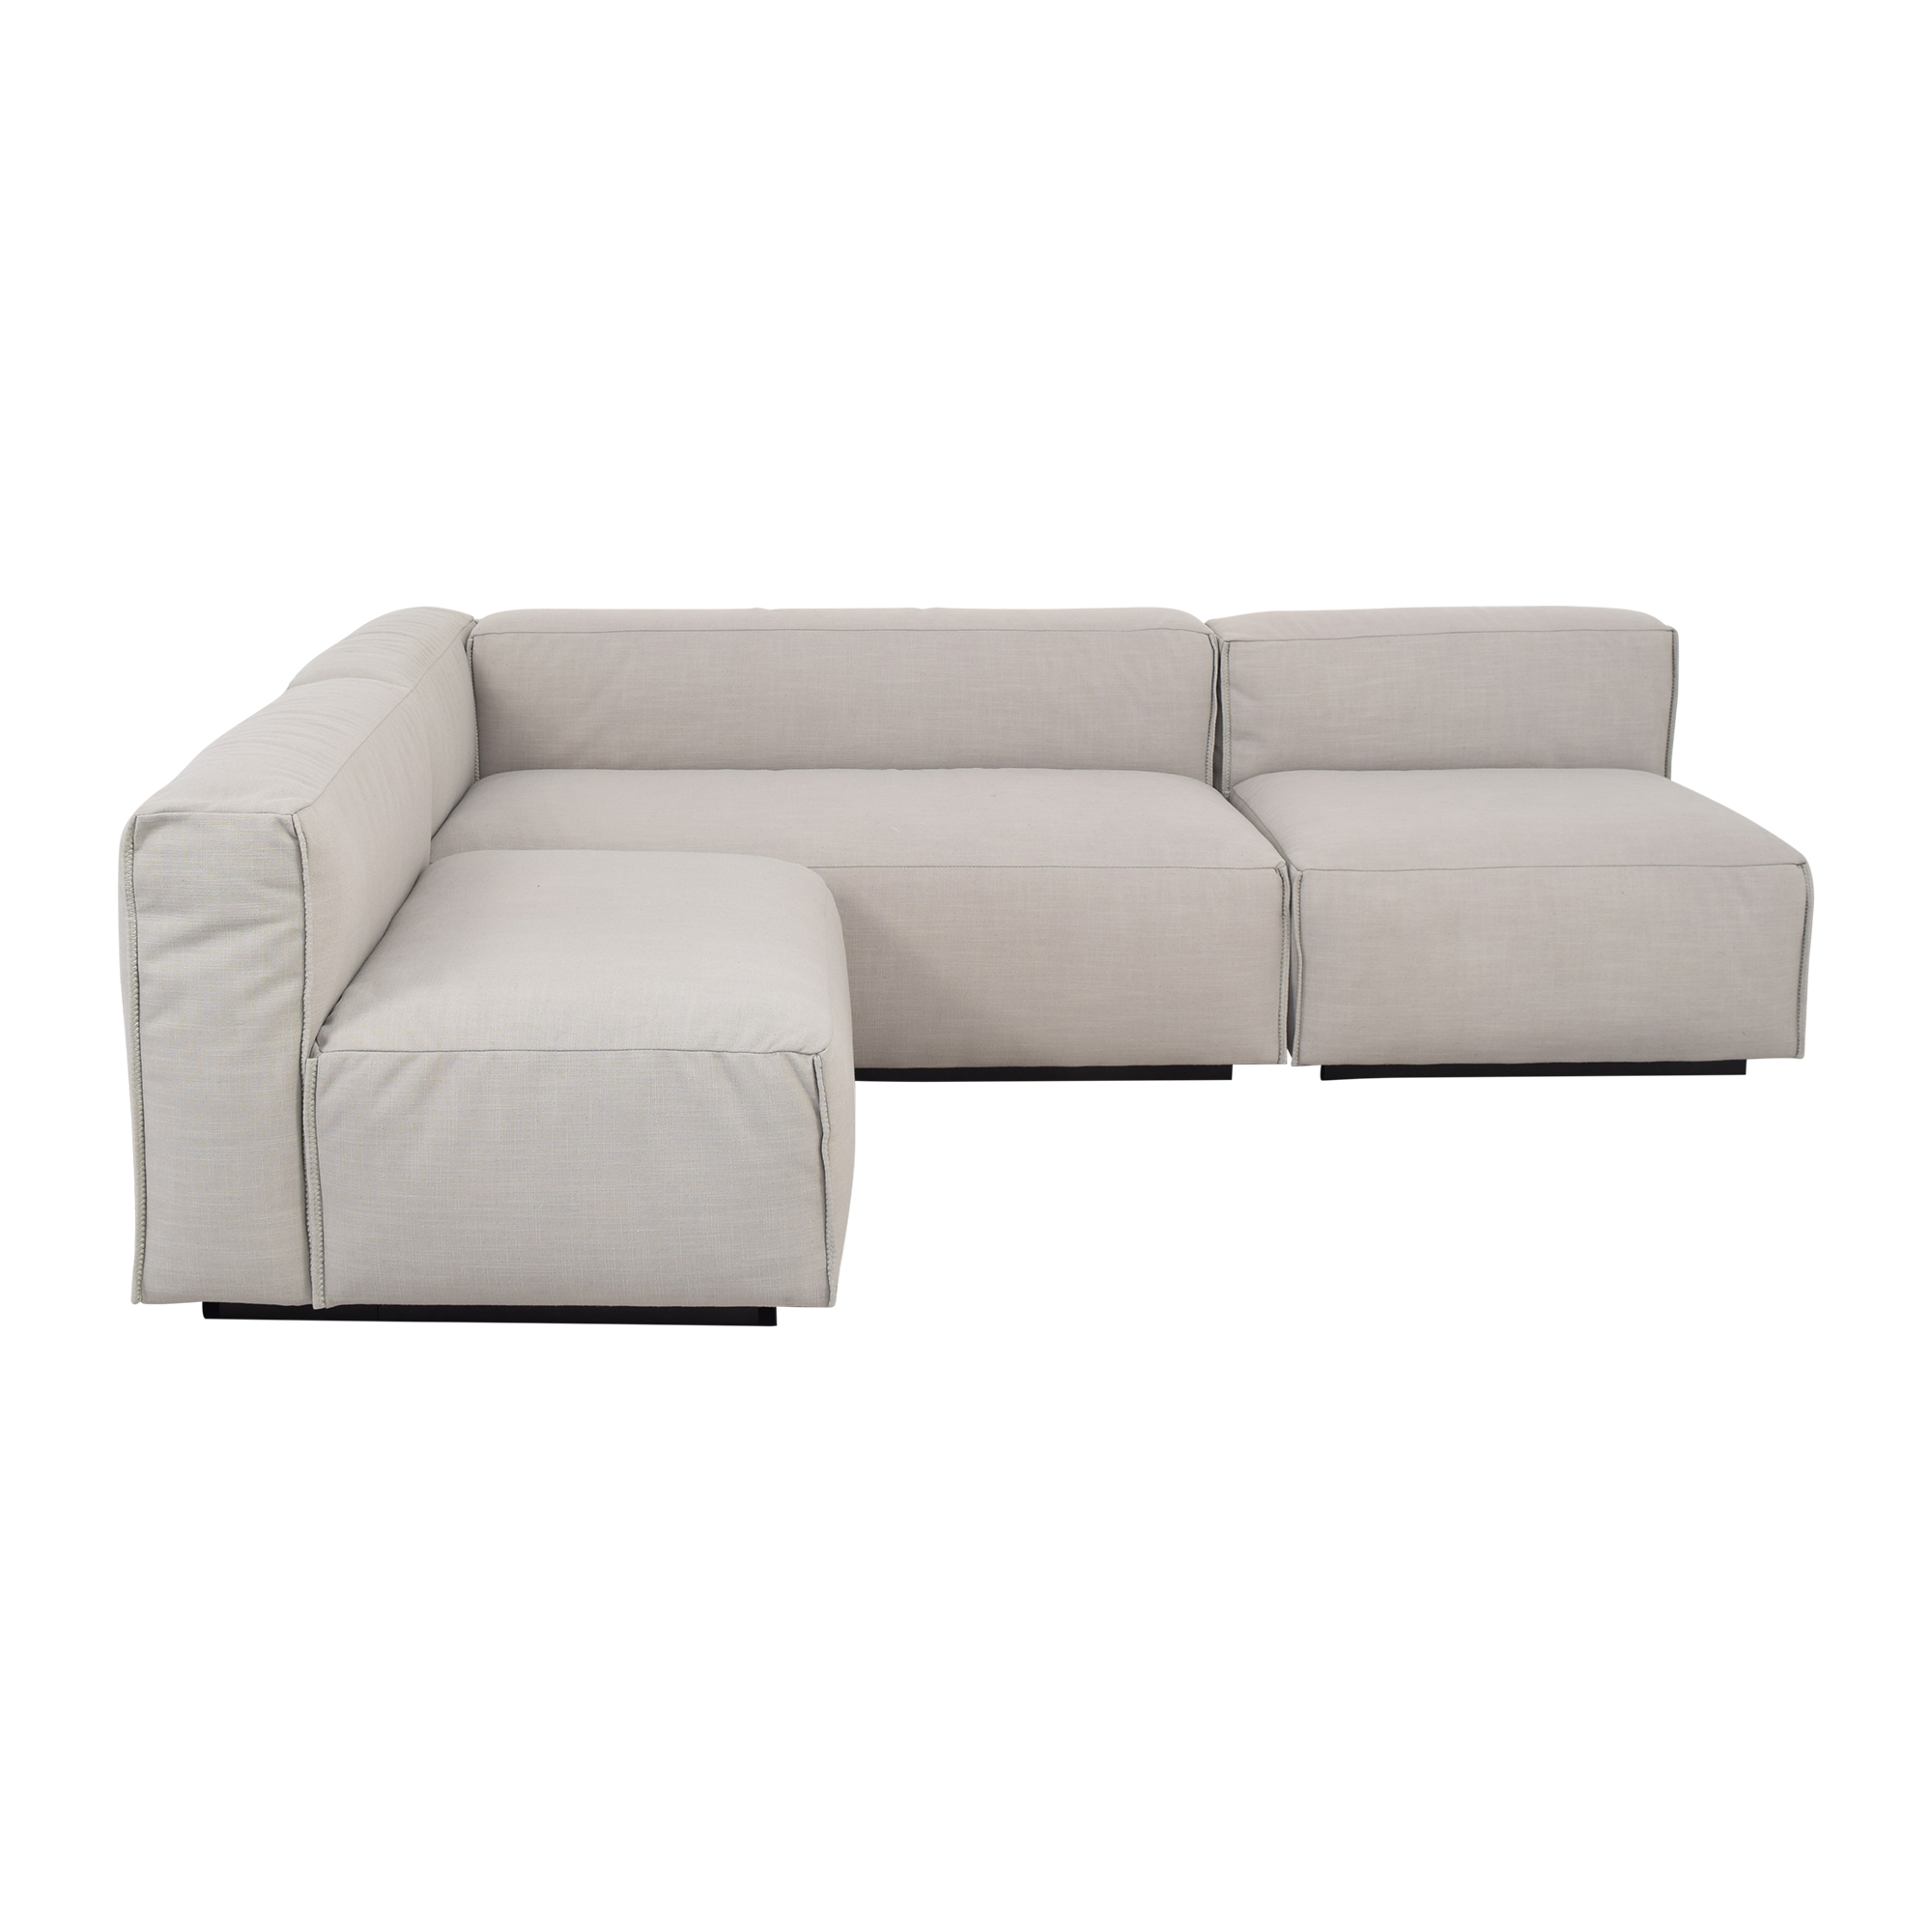 shop Blu Dot Cleon Medium Sectional Sofa Blu Dot Sofas